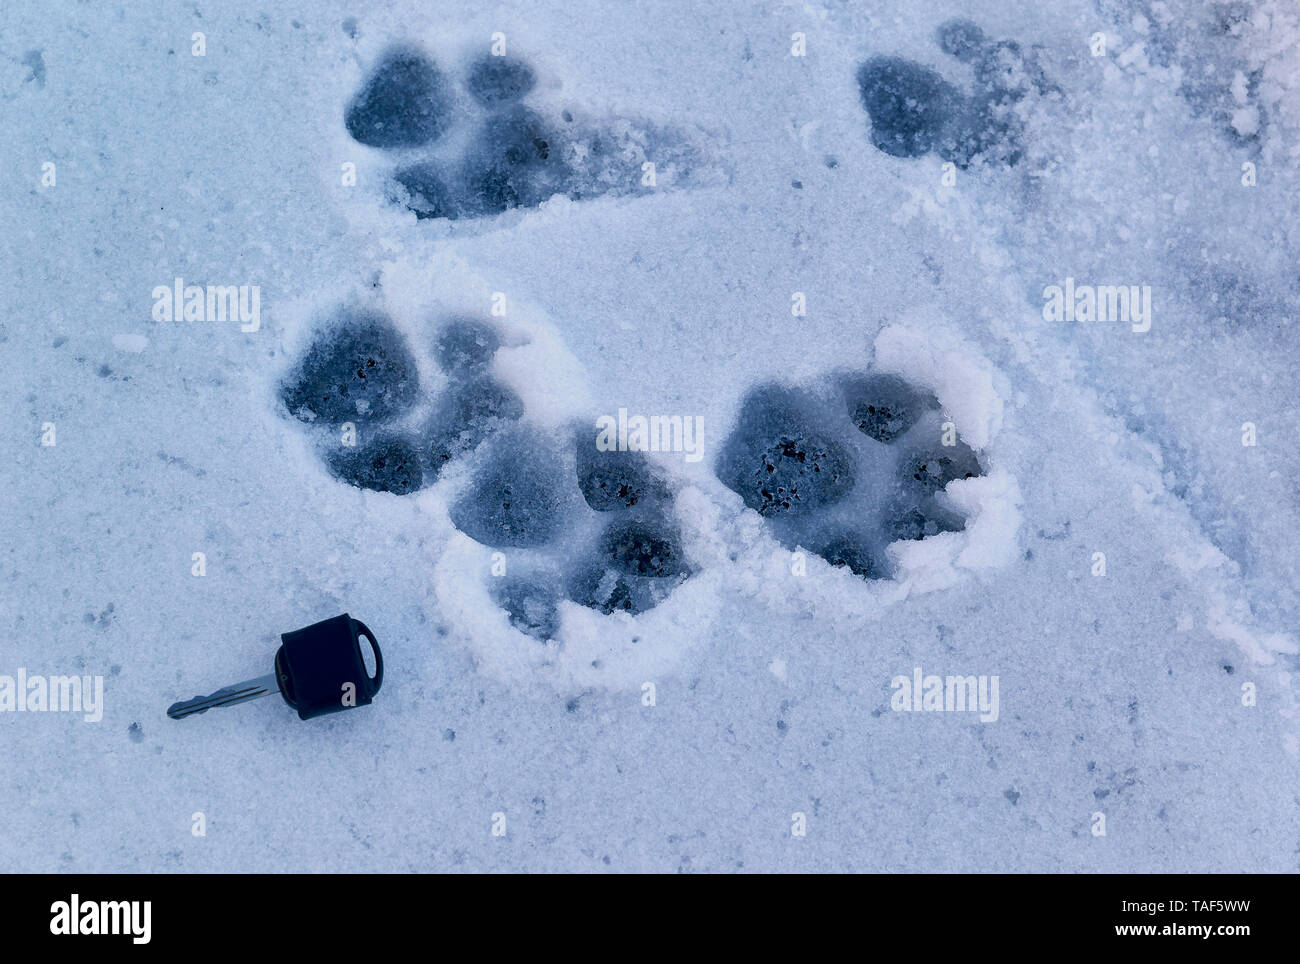 Footprints of European Wolf (Canis lupus) in the snow in autumn, Mercantour National Park, Alps, France - Stock Image